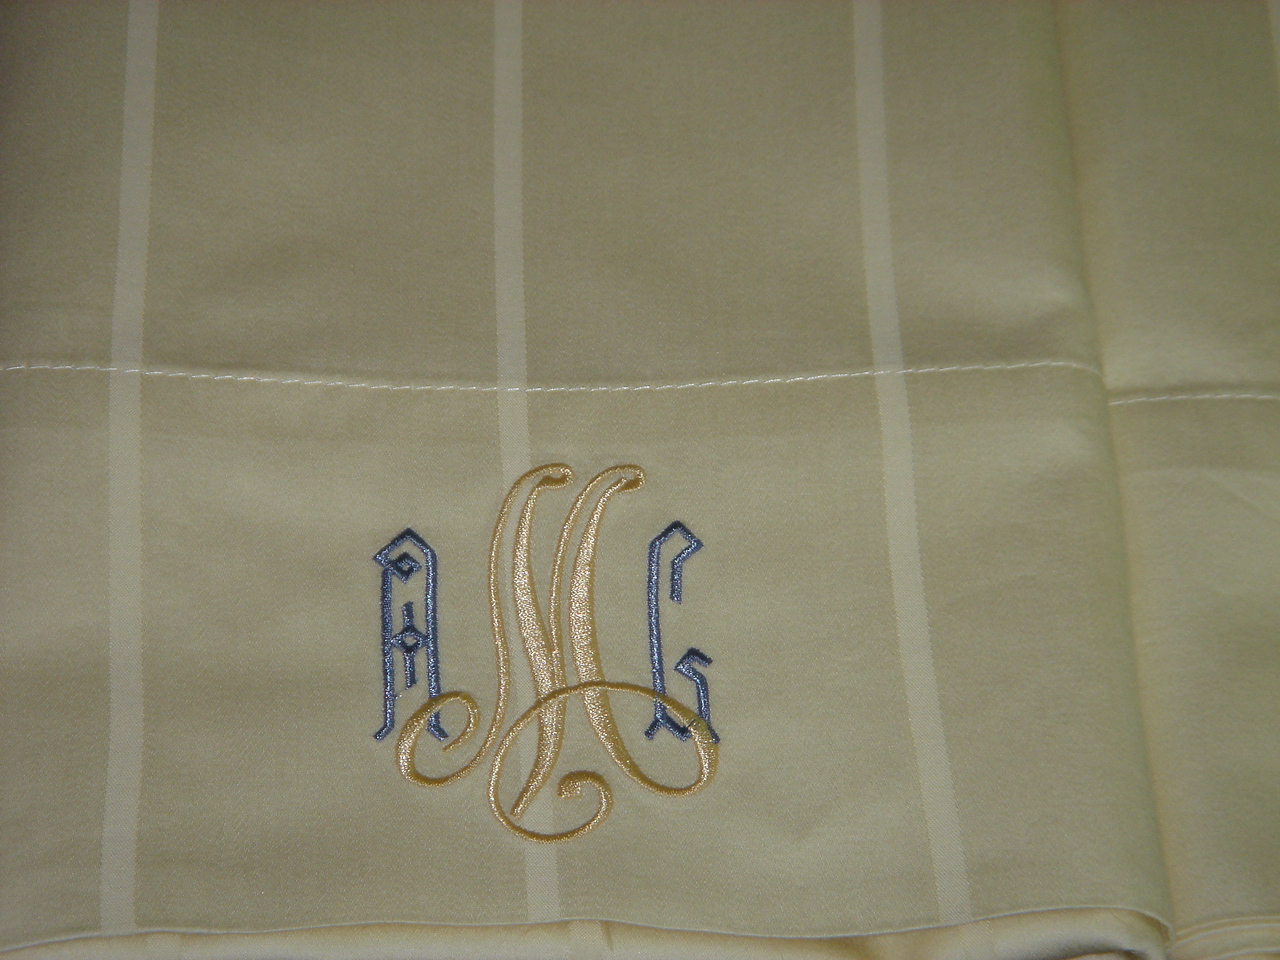 Monogrammed sheets for me!